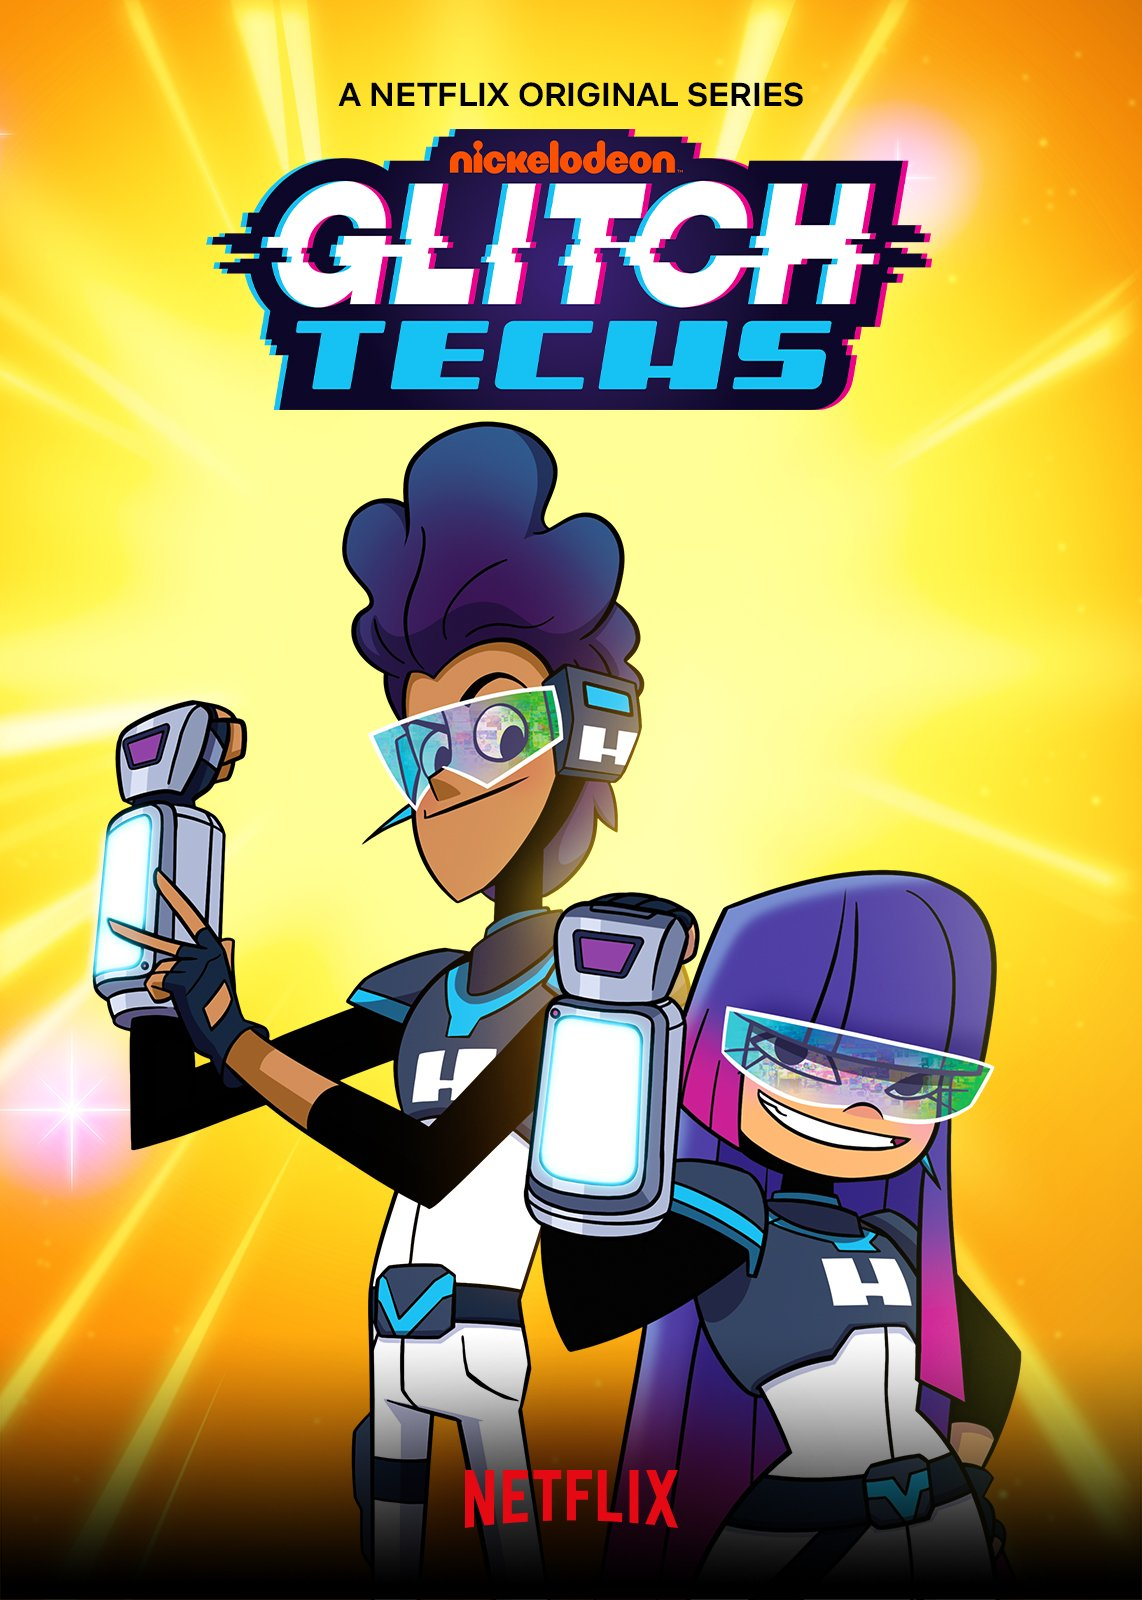 Glitch Techs Theme Song : glitch, techs, theme, NickALive!:, Netflix, Premiere, 'Glitch, Techs', Friday,, February